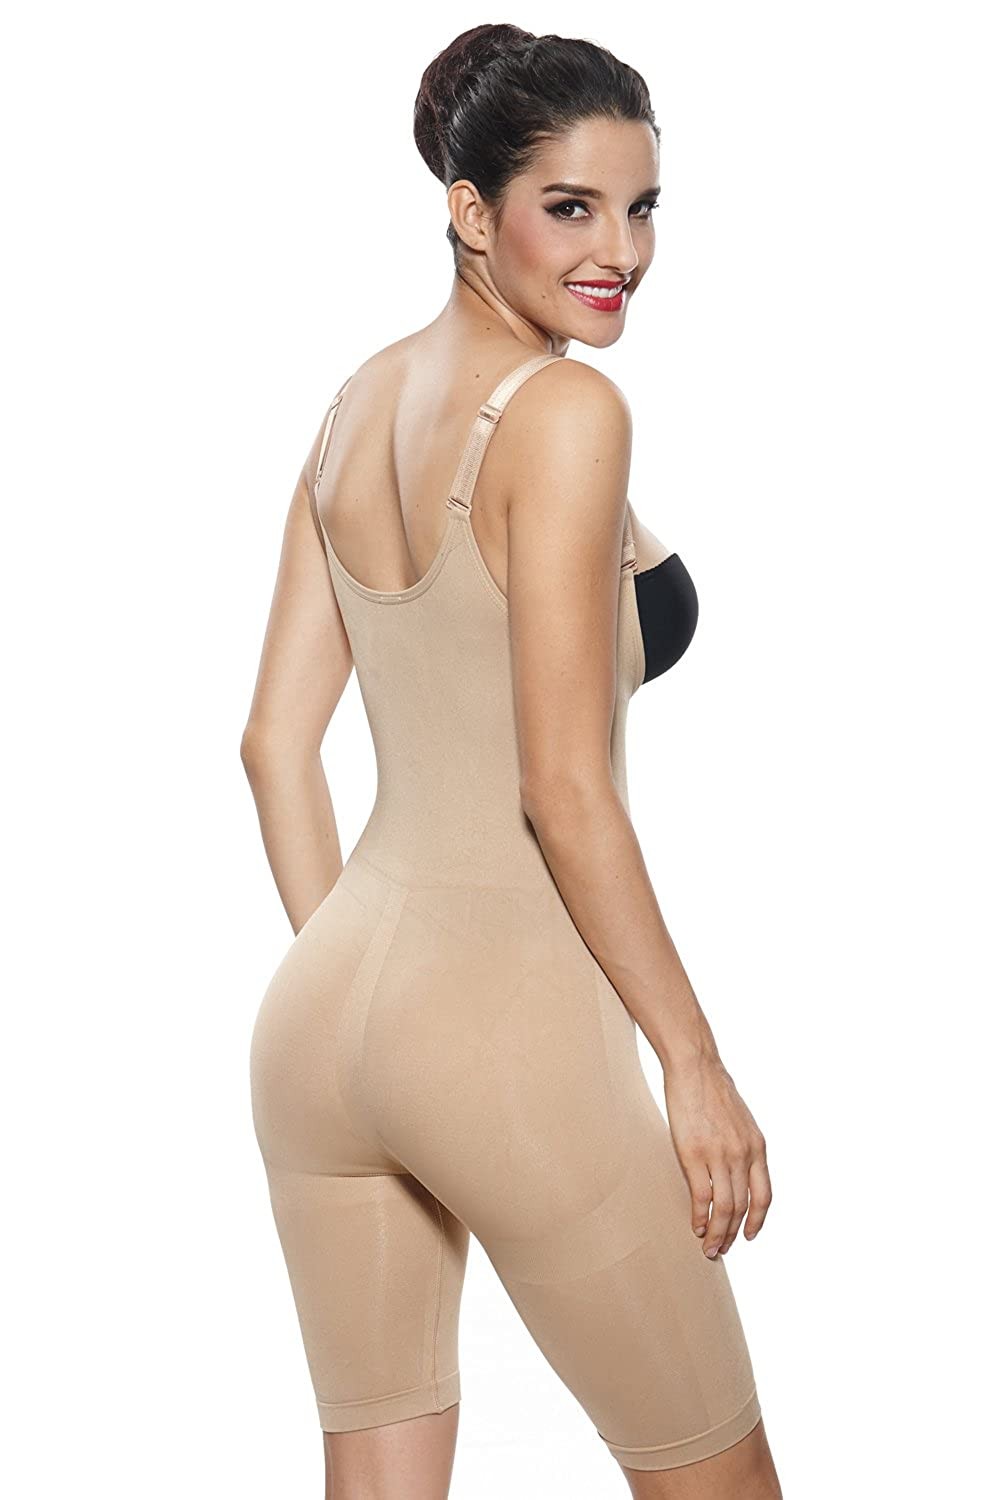 Khaya Womens Underwire Molded Cups Seamless Tank Tops Body Shaper Camisole